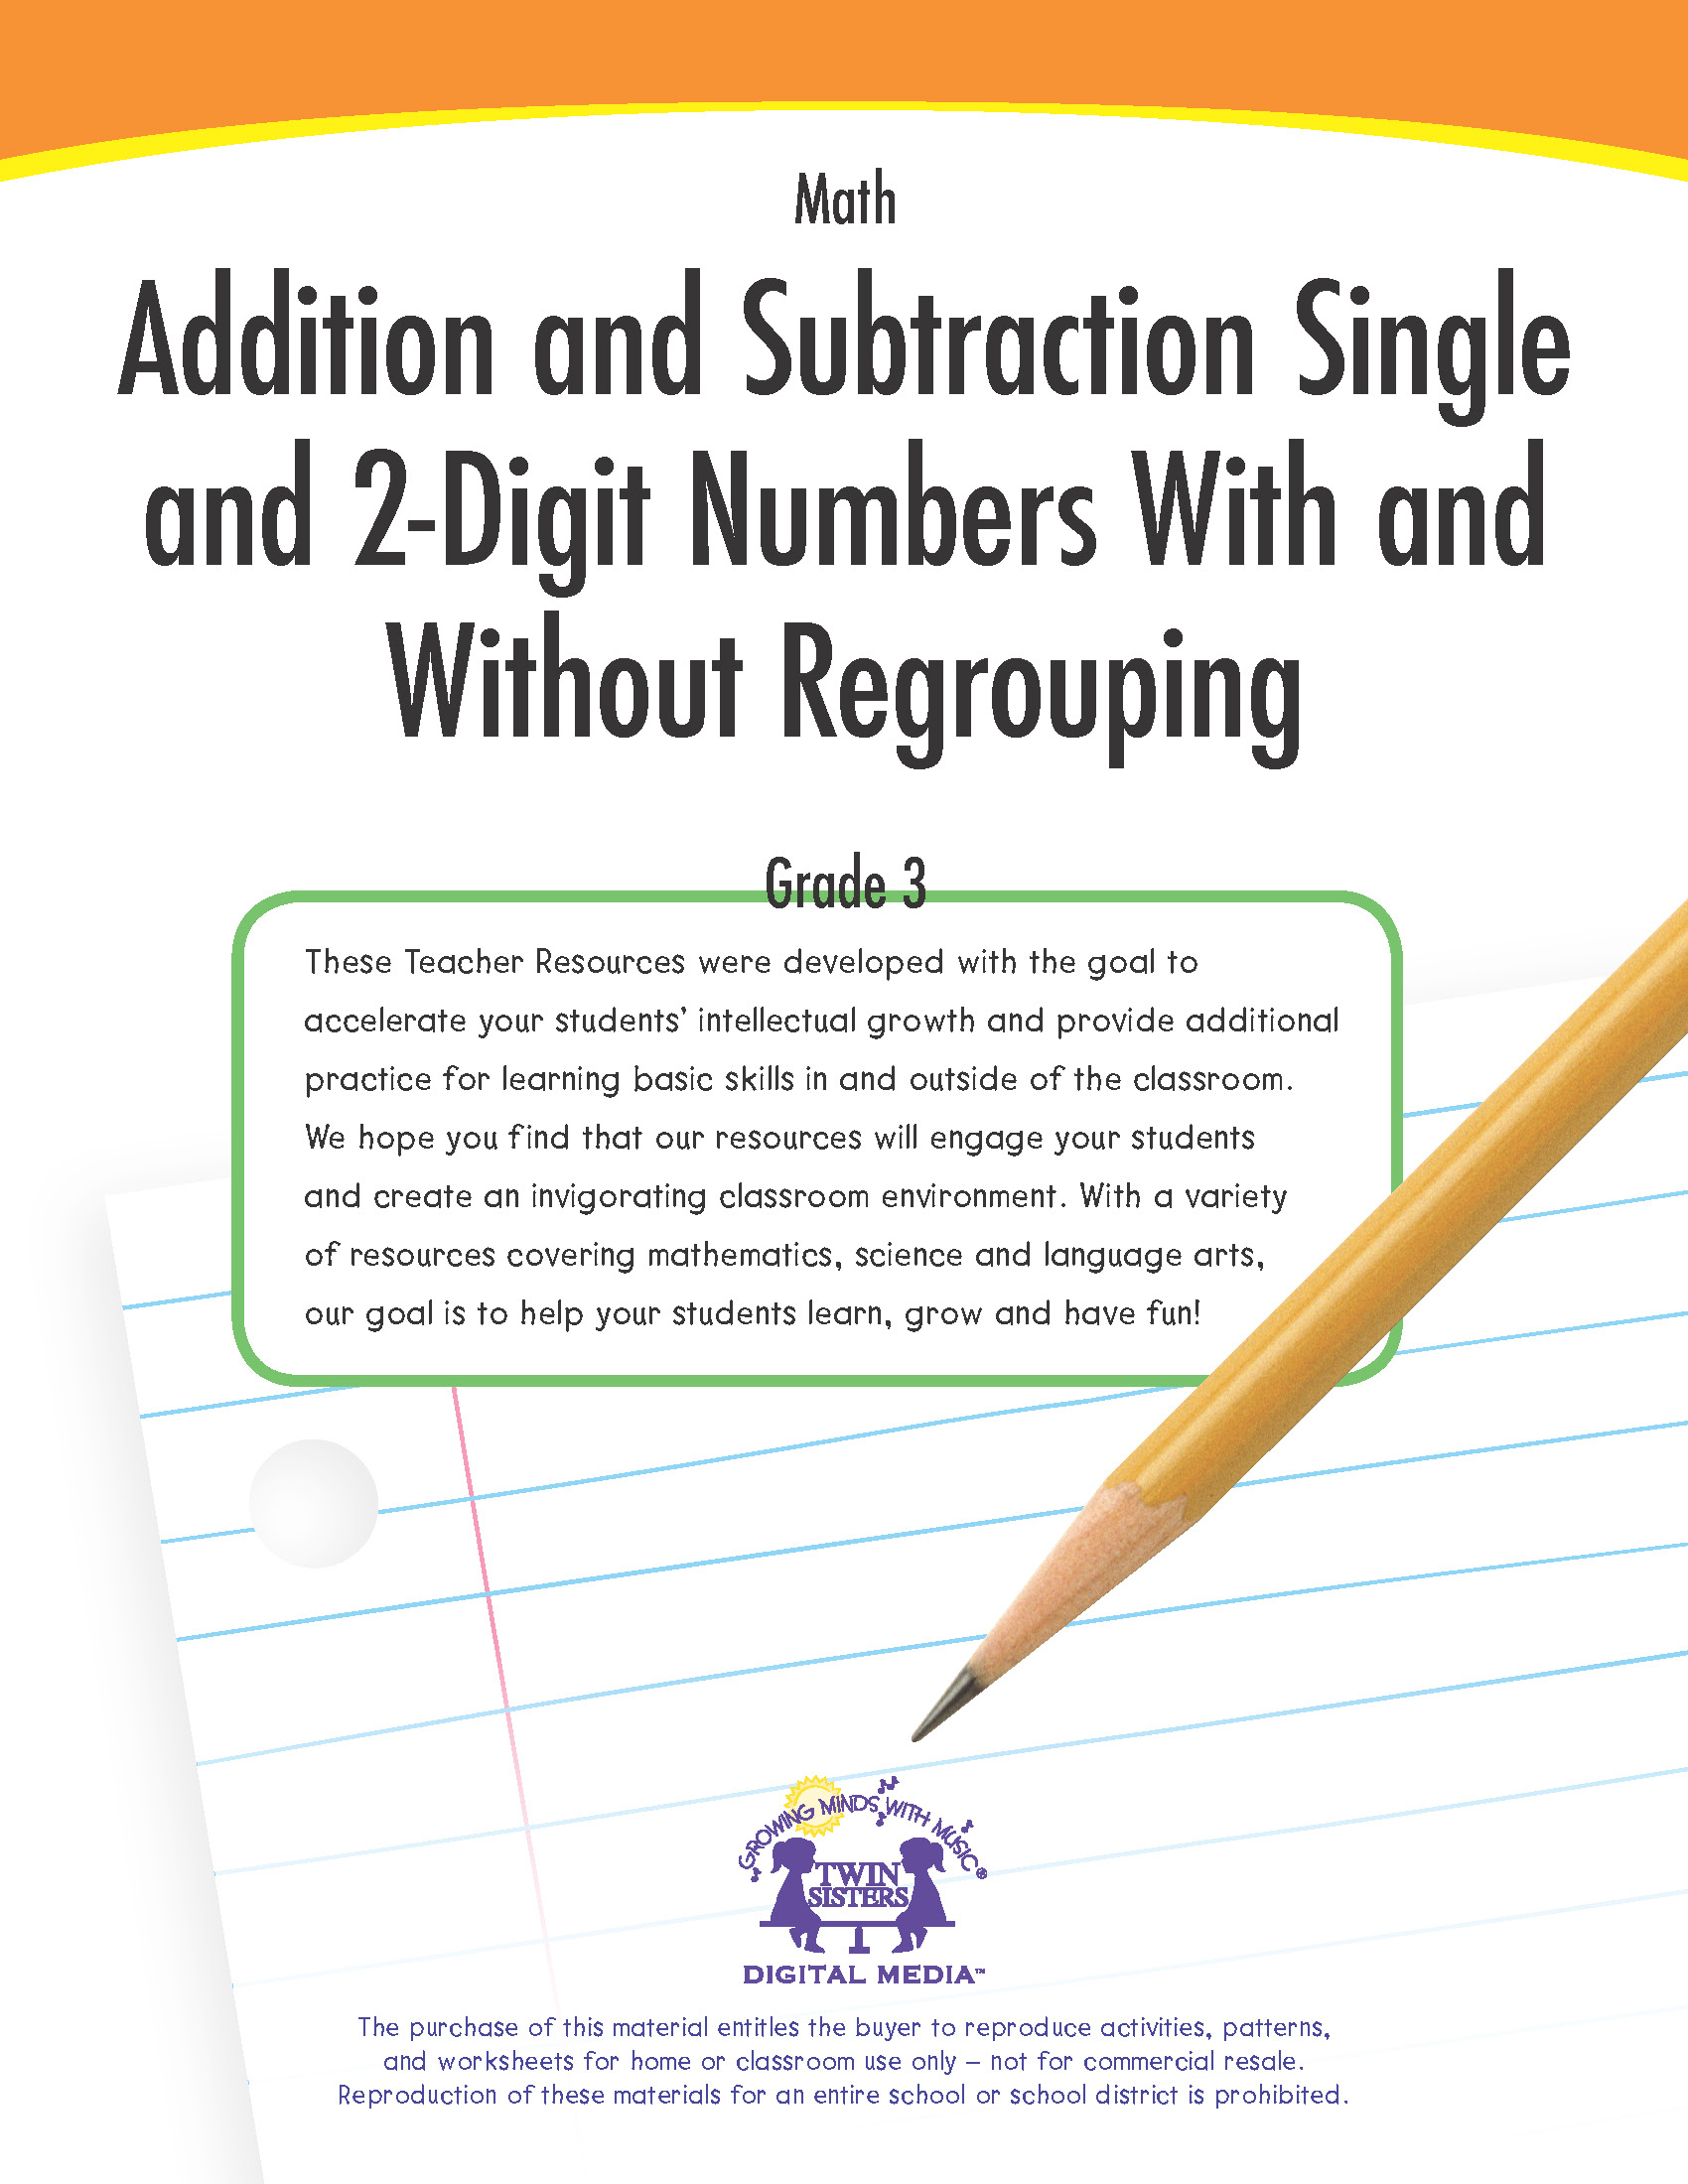 Math Grade 3 Addition And Subtraction Single And 2 Digit